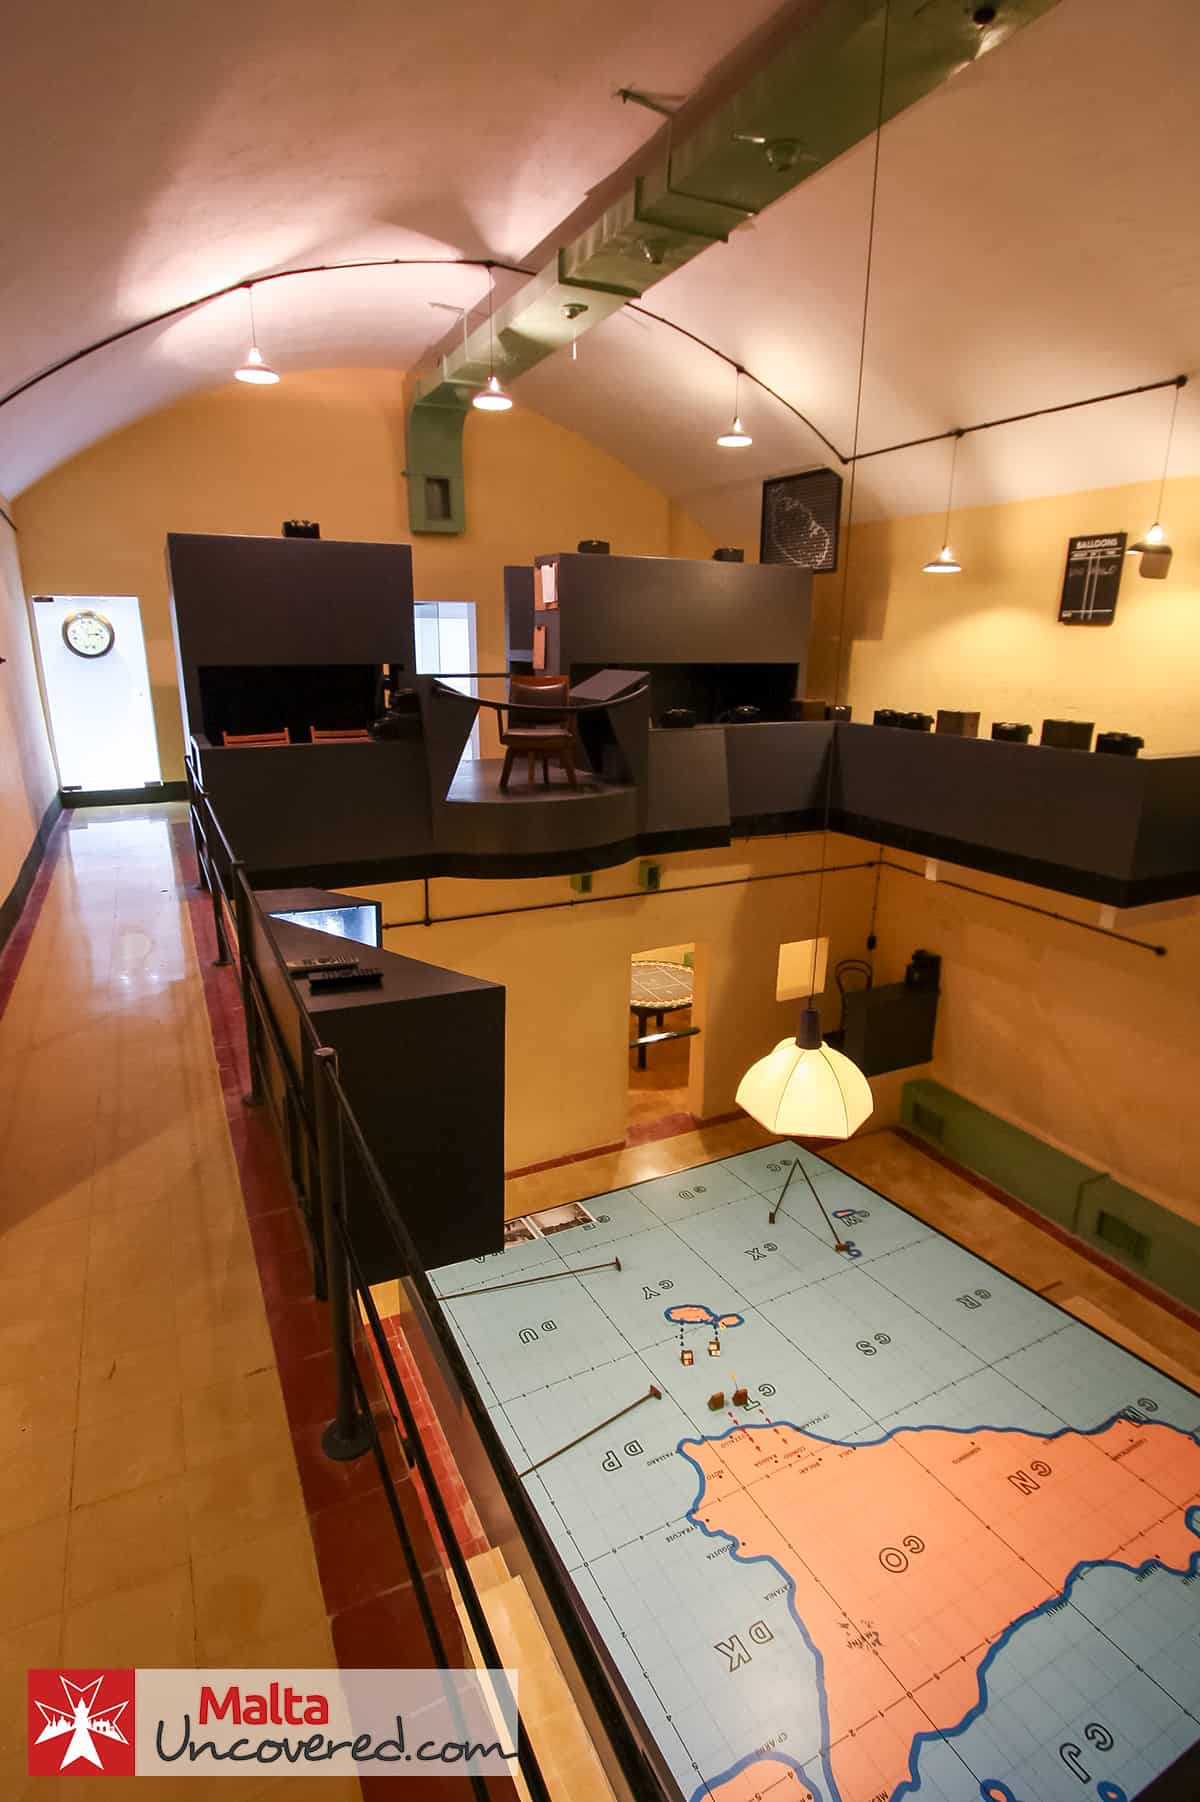 The Fighter Sector Operations Room.